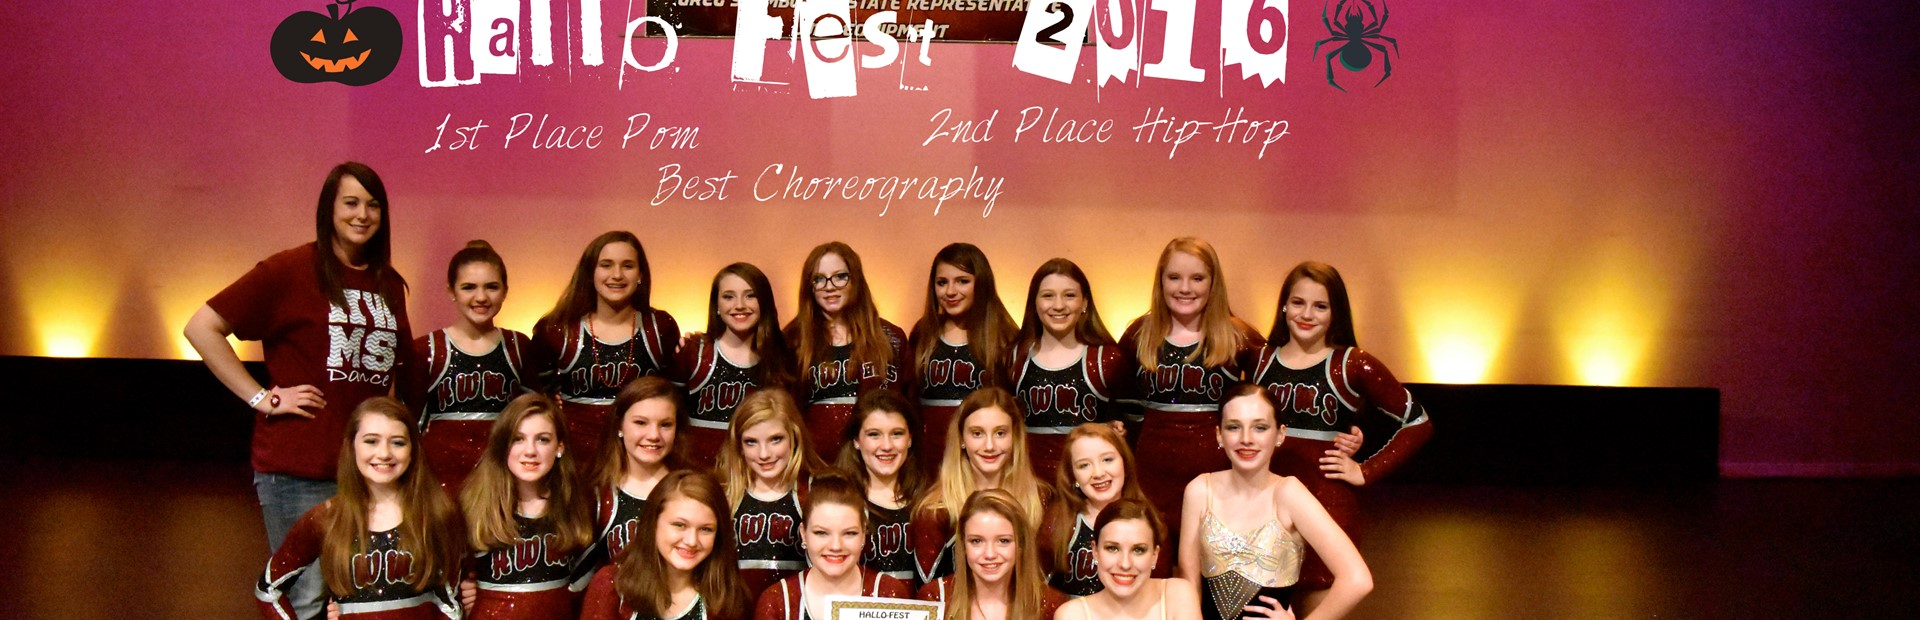 HWMS Dance Team--1st Place in Pom, 2nd Place in Hip Hop at Hallofest 2016